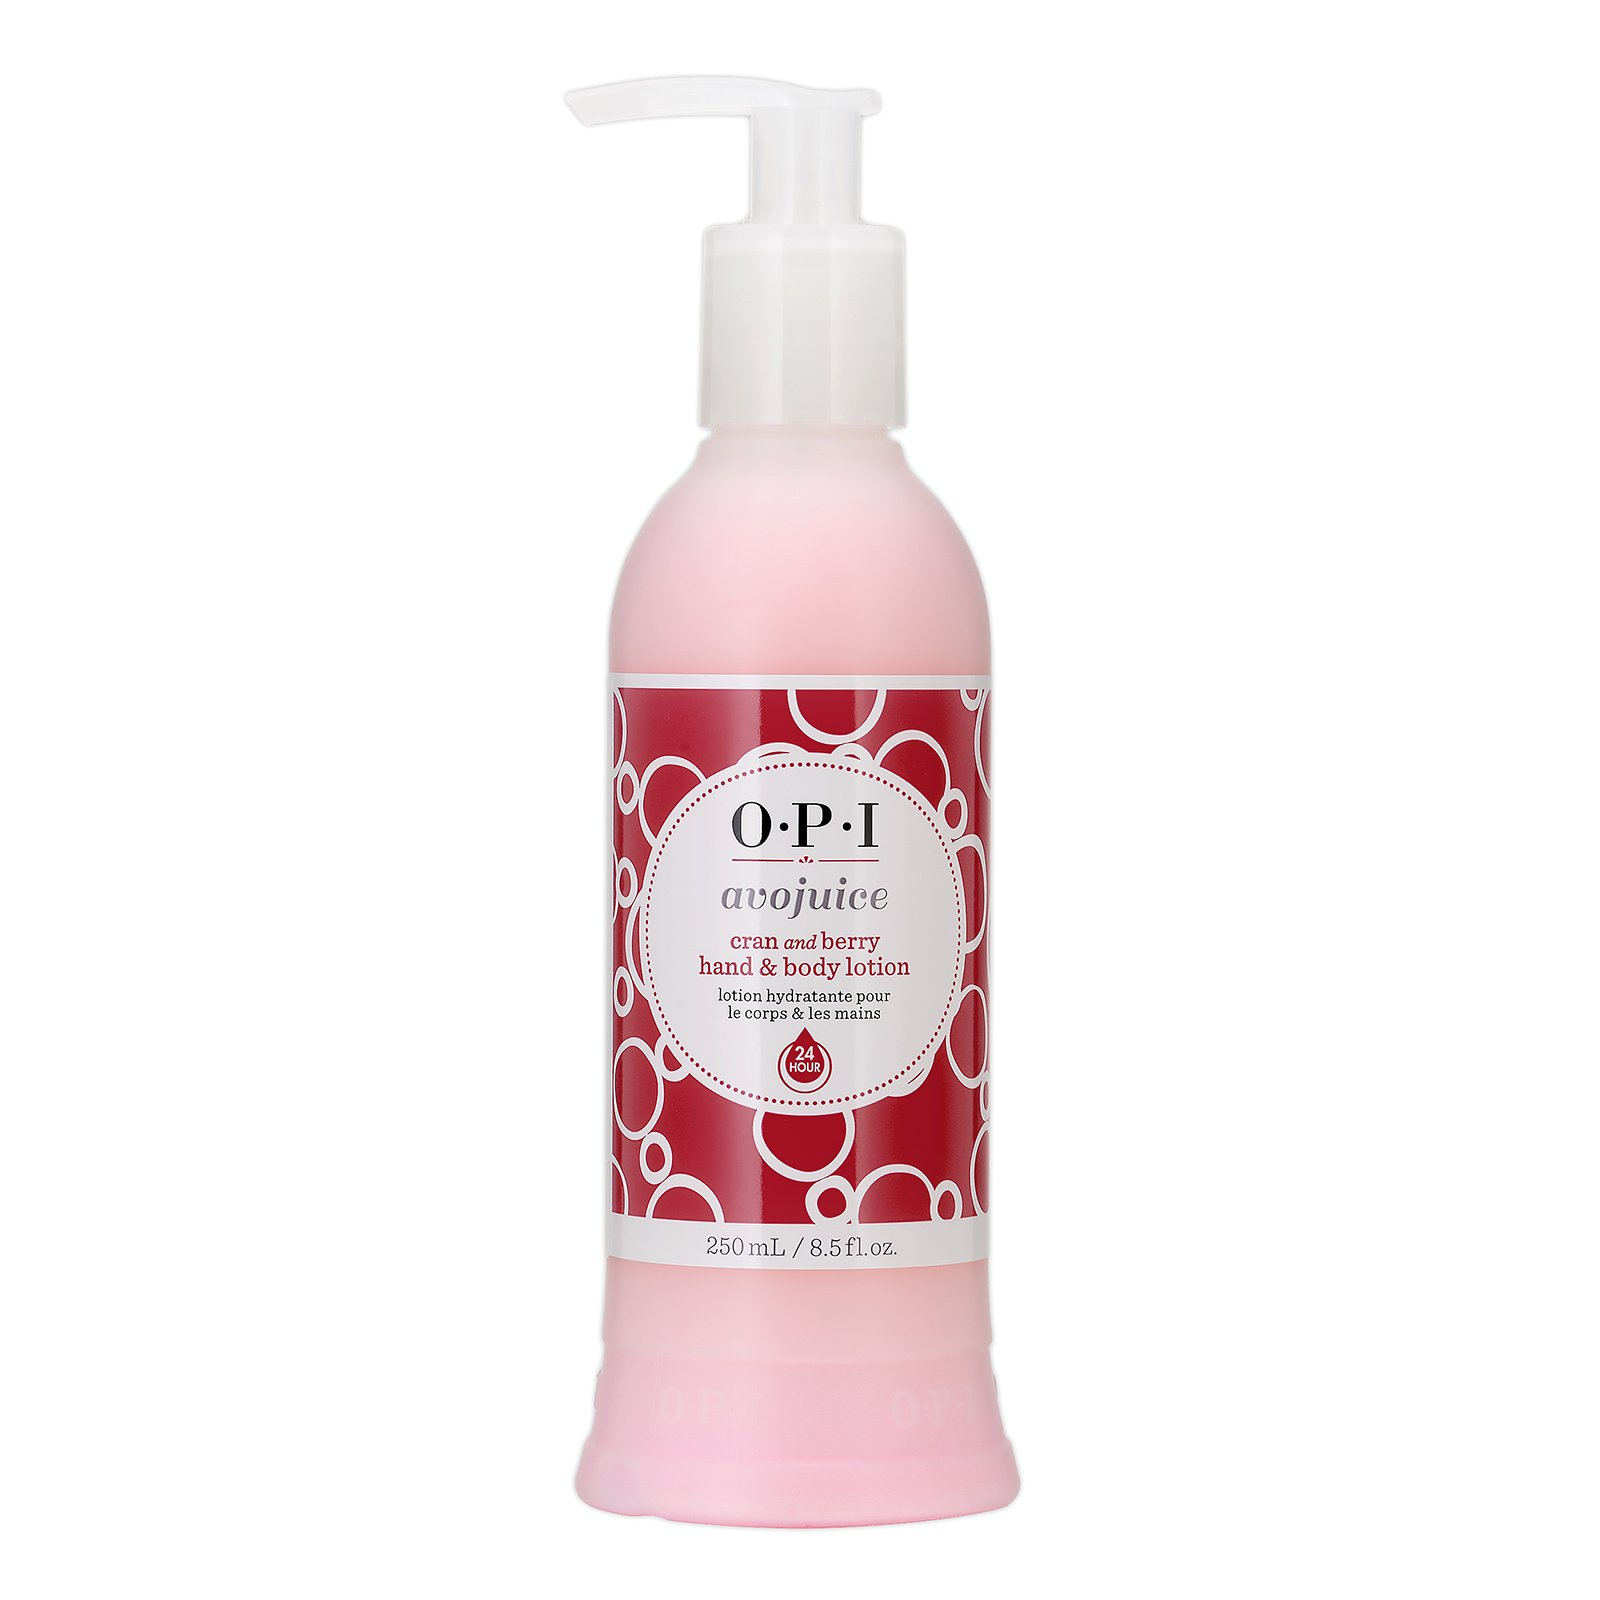 OPI Avojuice Cran And Berry Juice Hand And Body Lotion Cran and Berry, 8.5oz, 250ml from Cosme-De.com